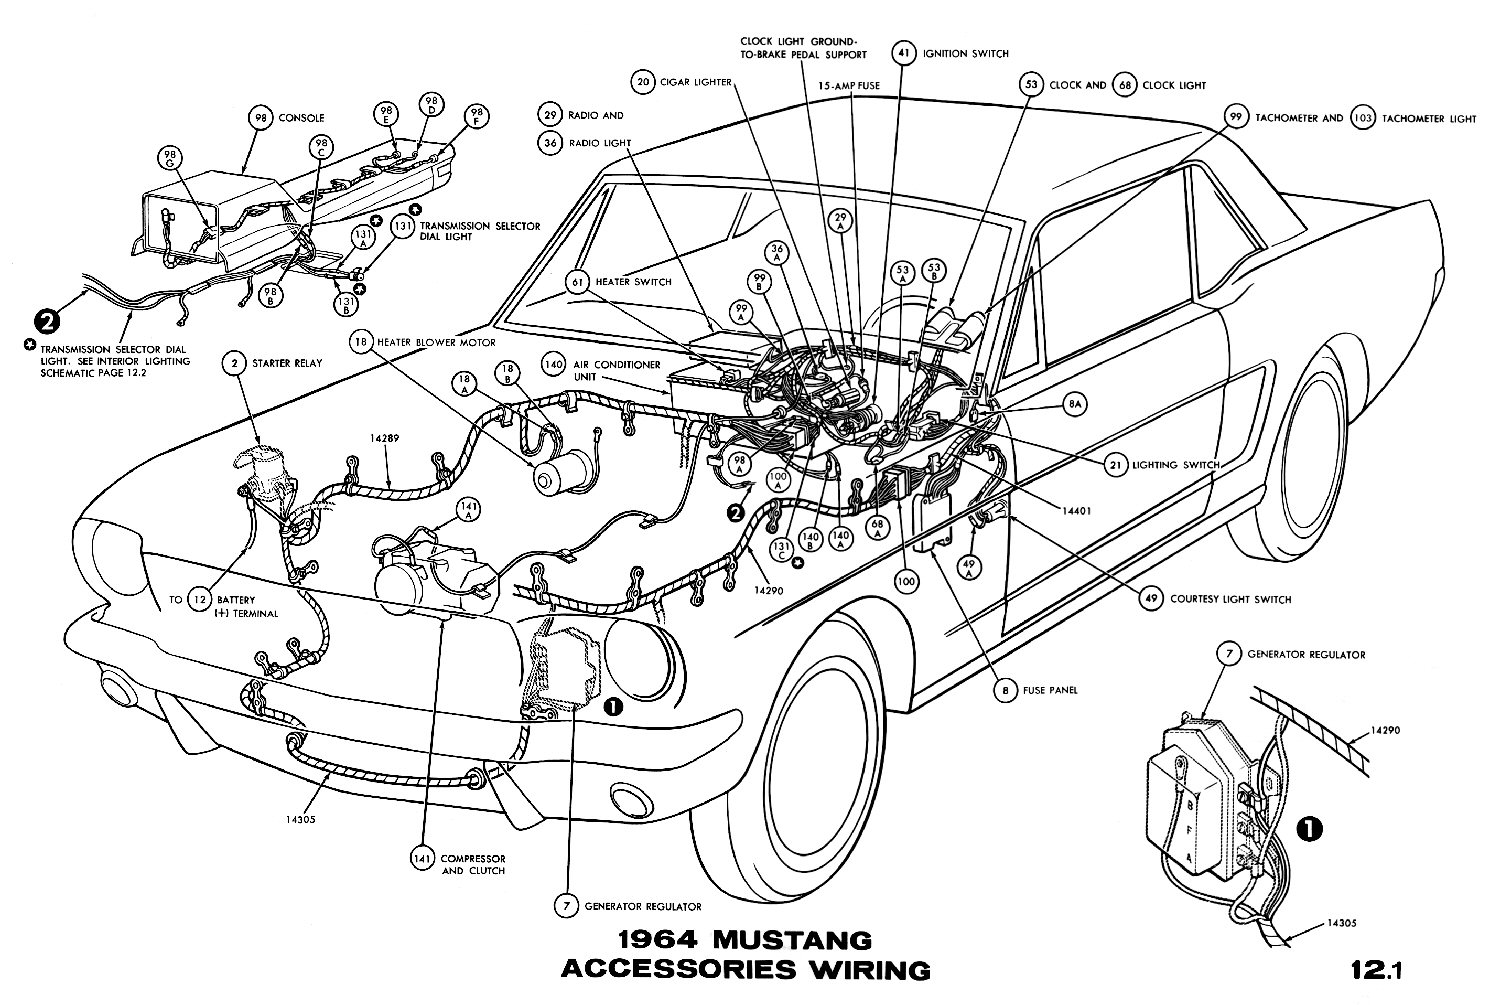 1972 Ford Regulator Wiring Diagram on vw wiring harness kit